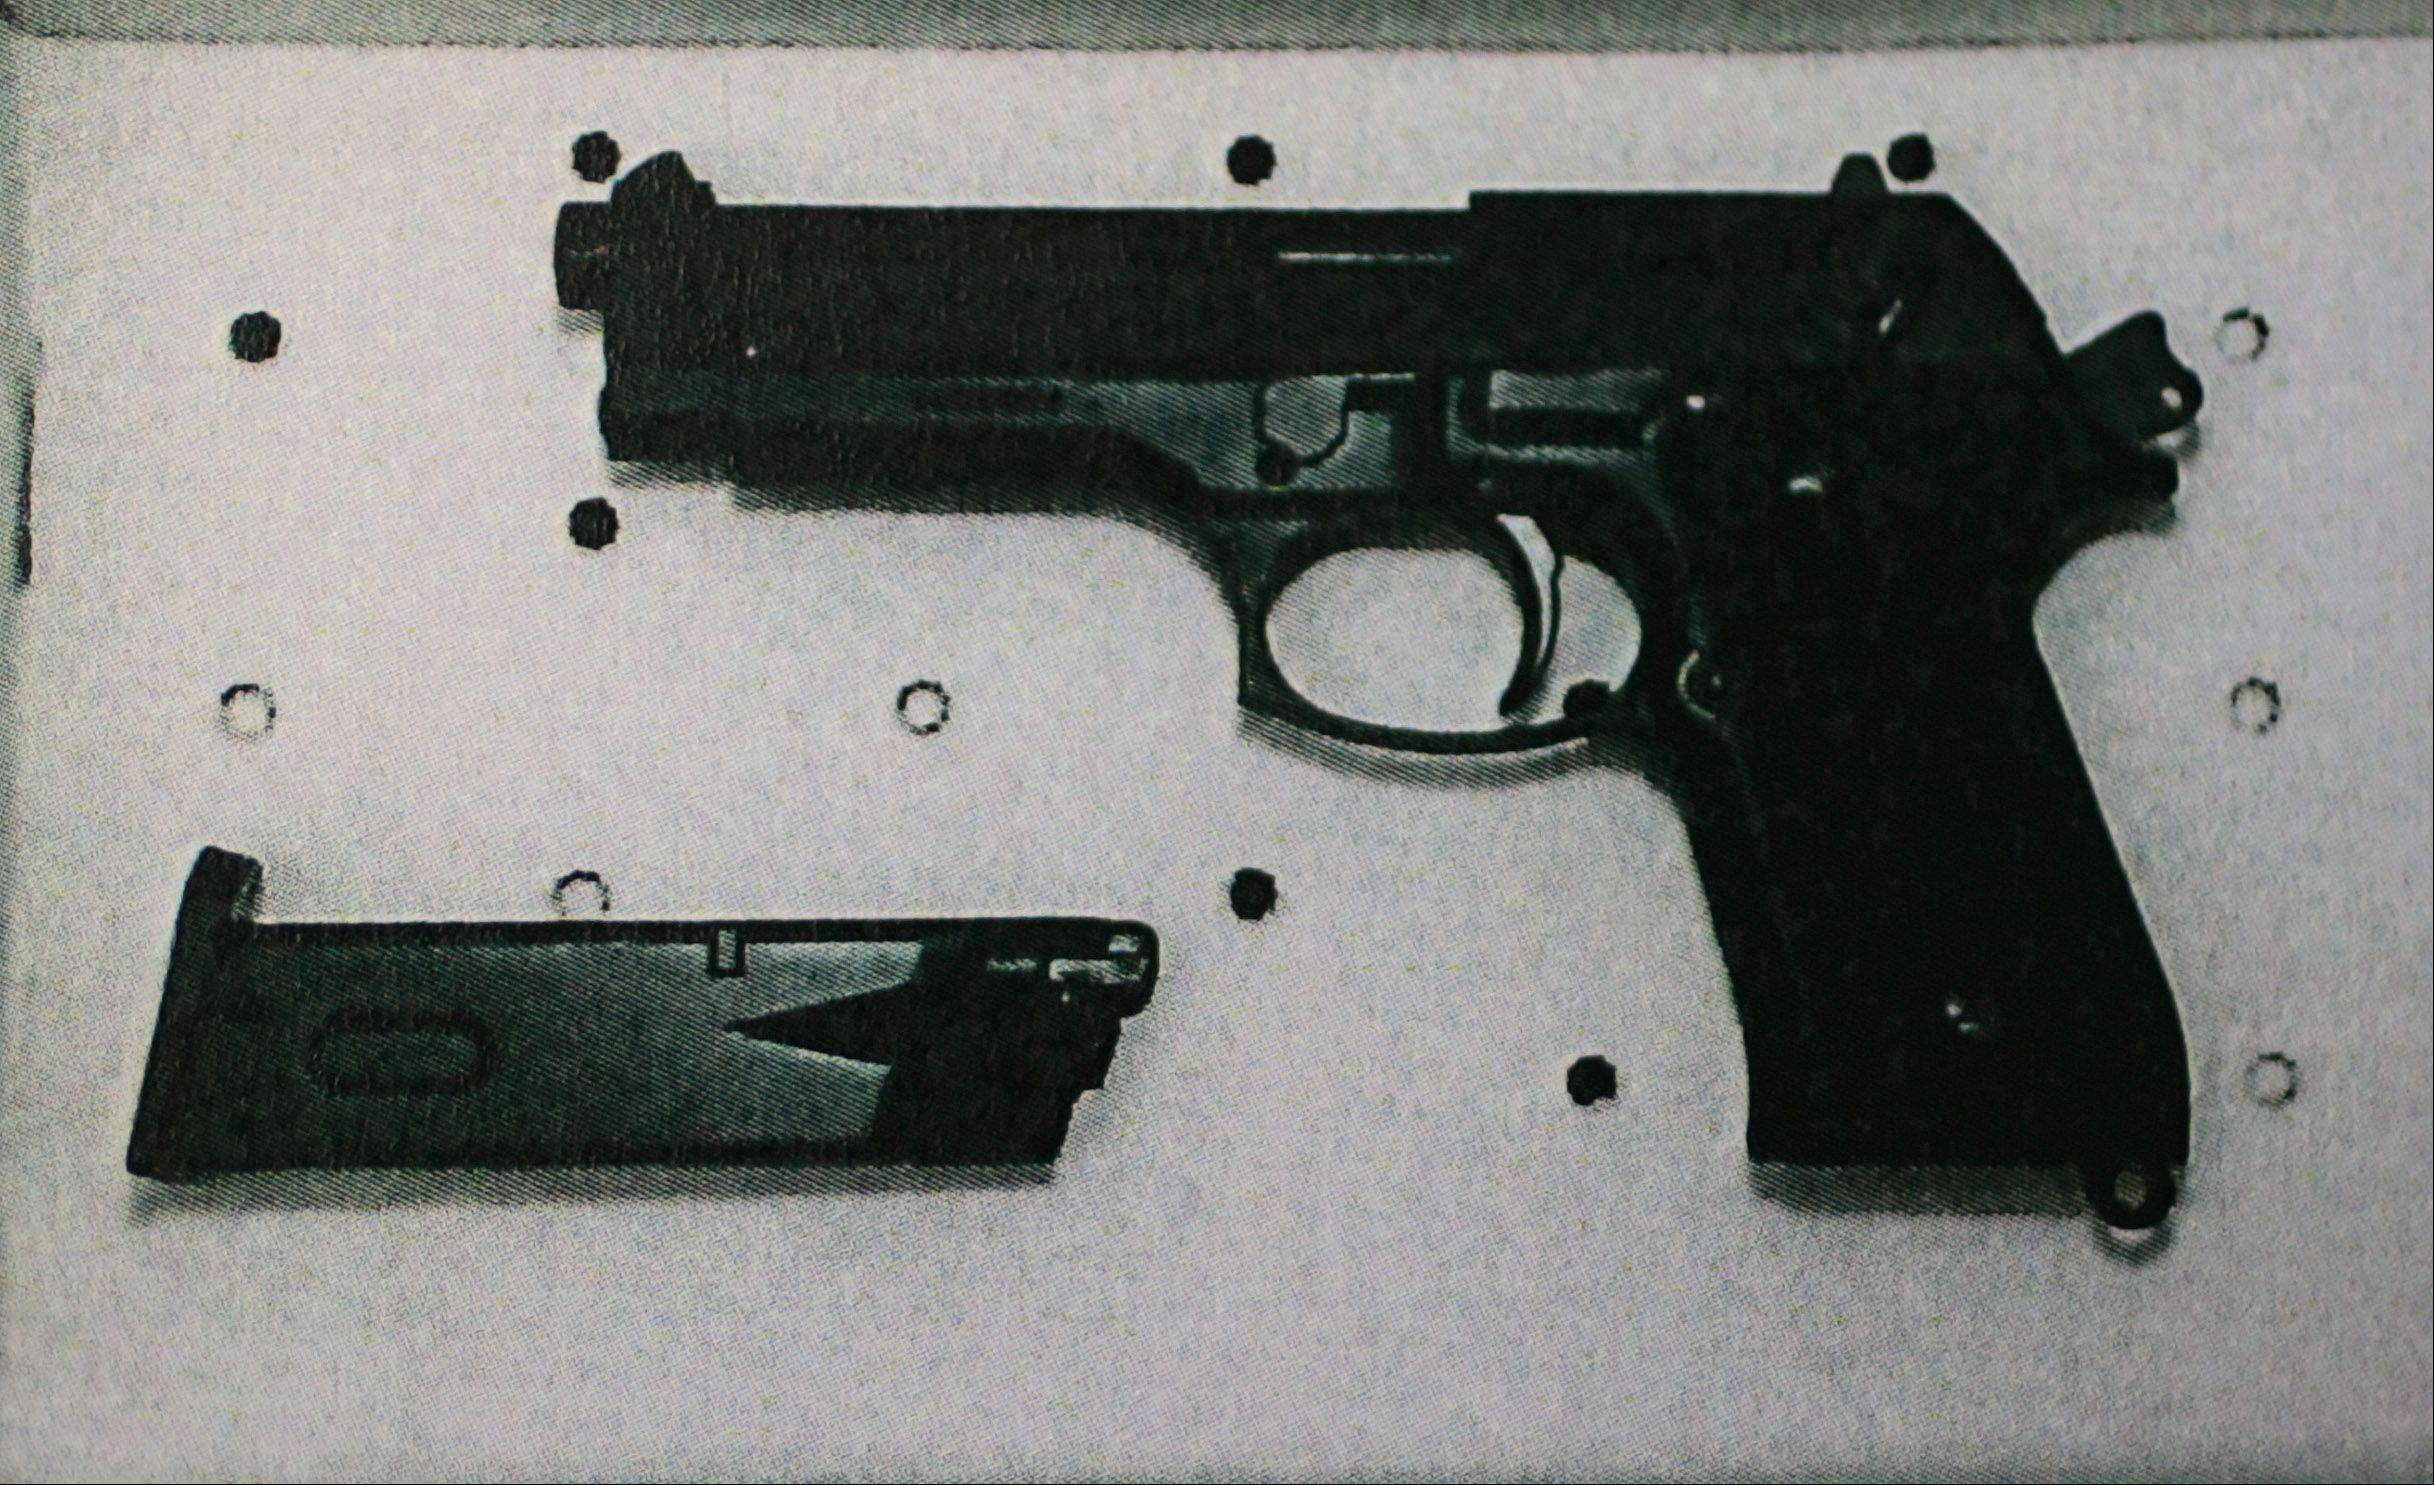 Authorities say Howard R. Lazarus of Mundelein walked into the Vernon Hills Police station early Wednesday and pulled this realistic-looking replica handgun on an officer.